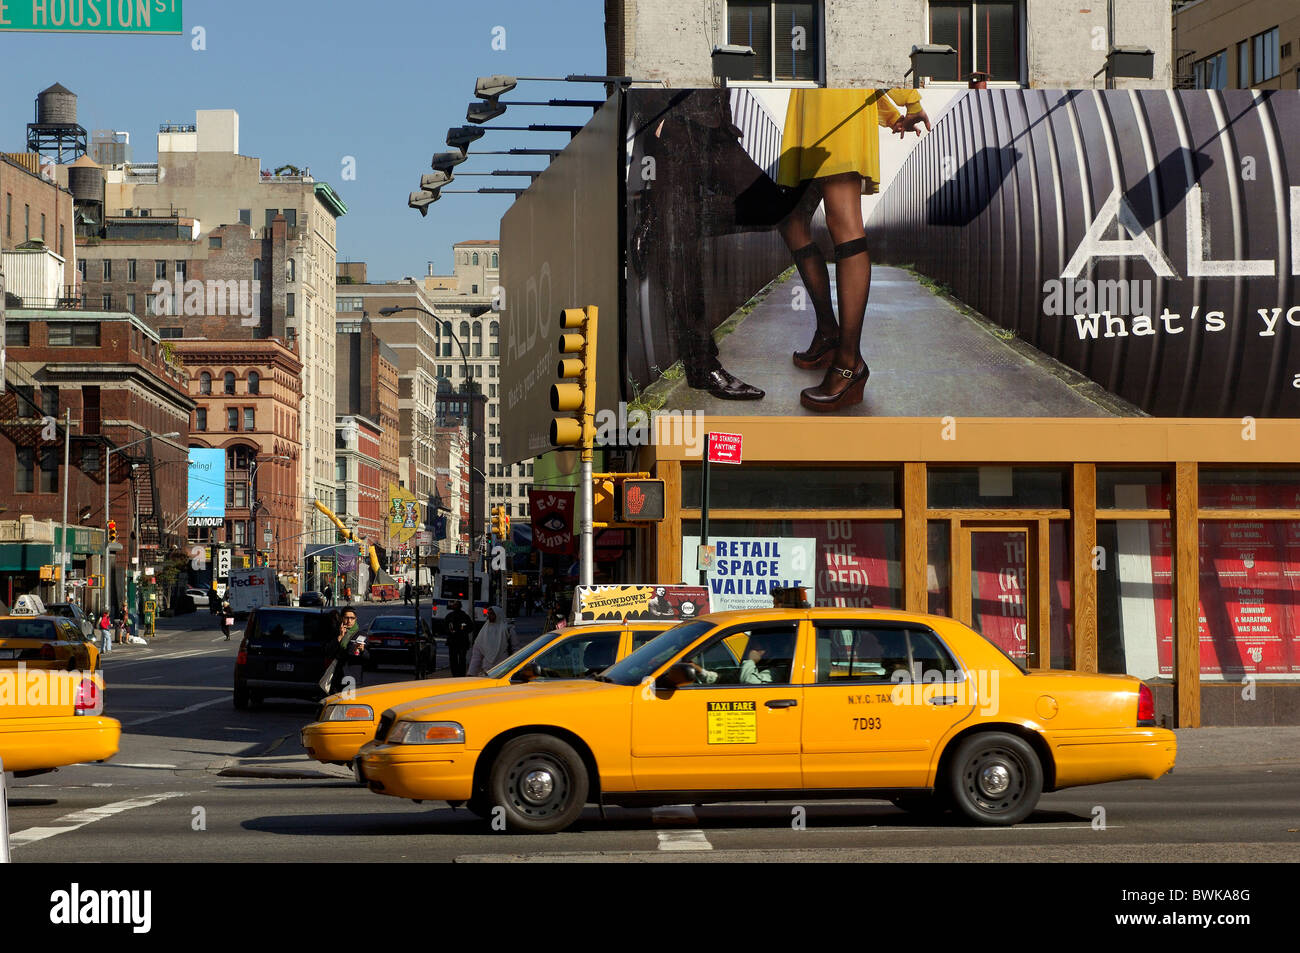 posters advertisements advertising taxi Yellow cabs street scene outside street crossroad intersection Houst - Stock Image